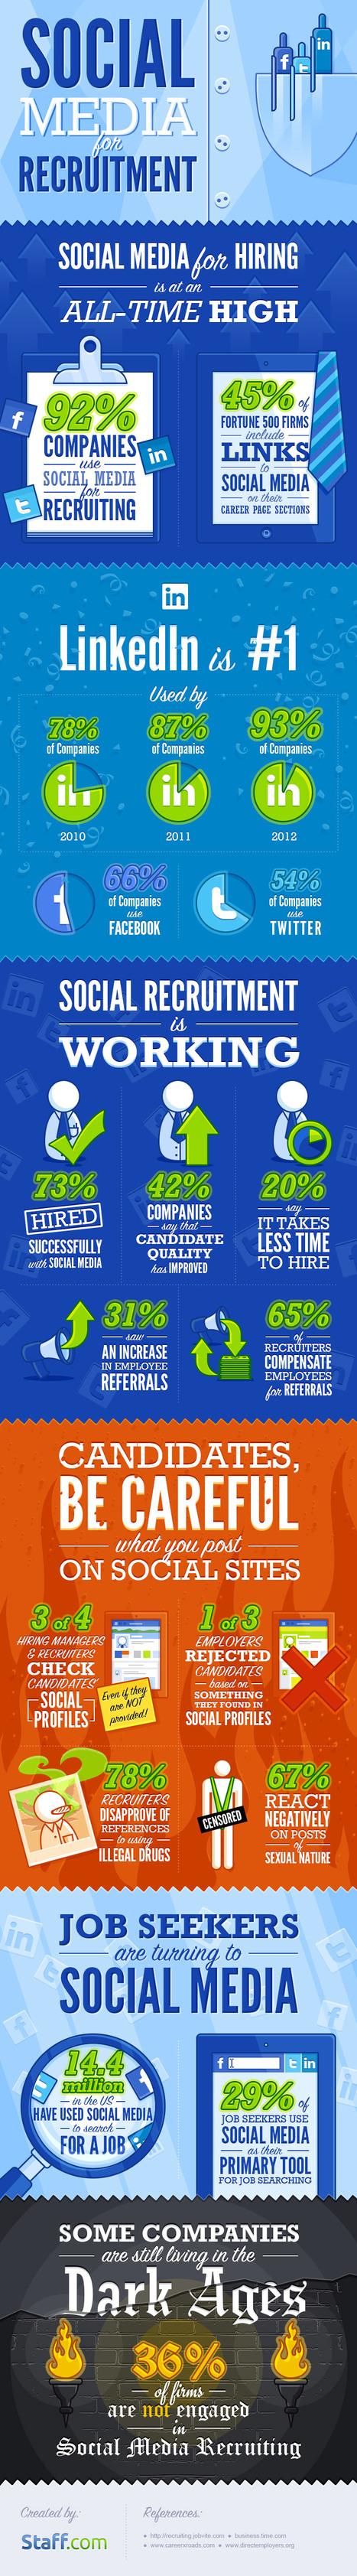 Why Social Recruitment Works [INFOGRAPHIC] | Social Recruting | Scoop.it